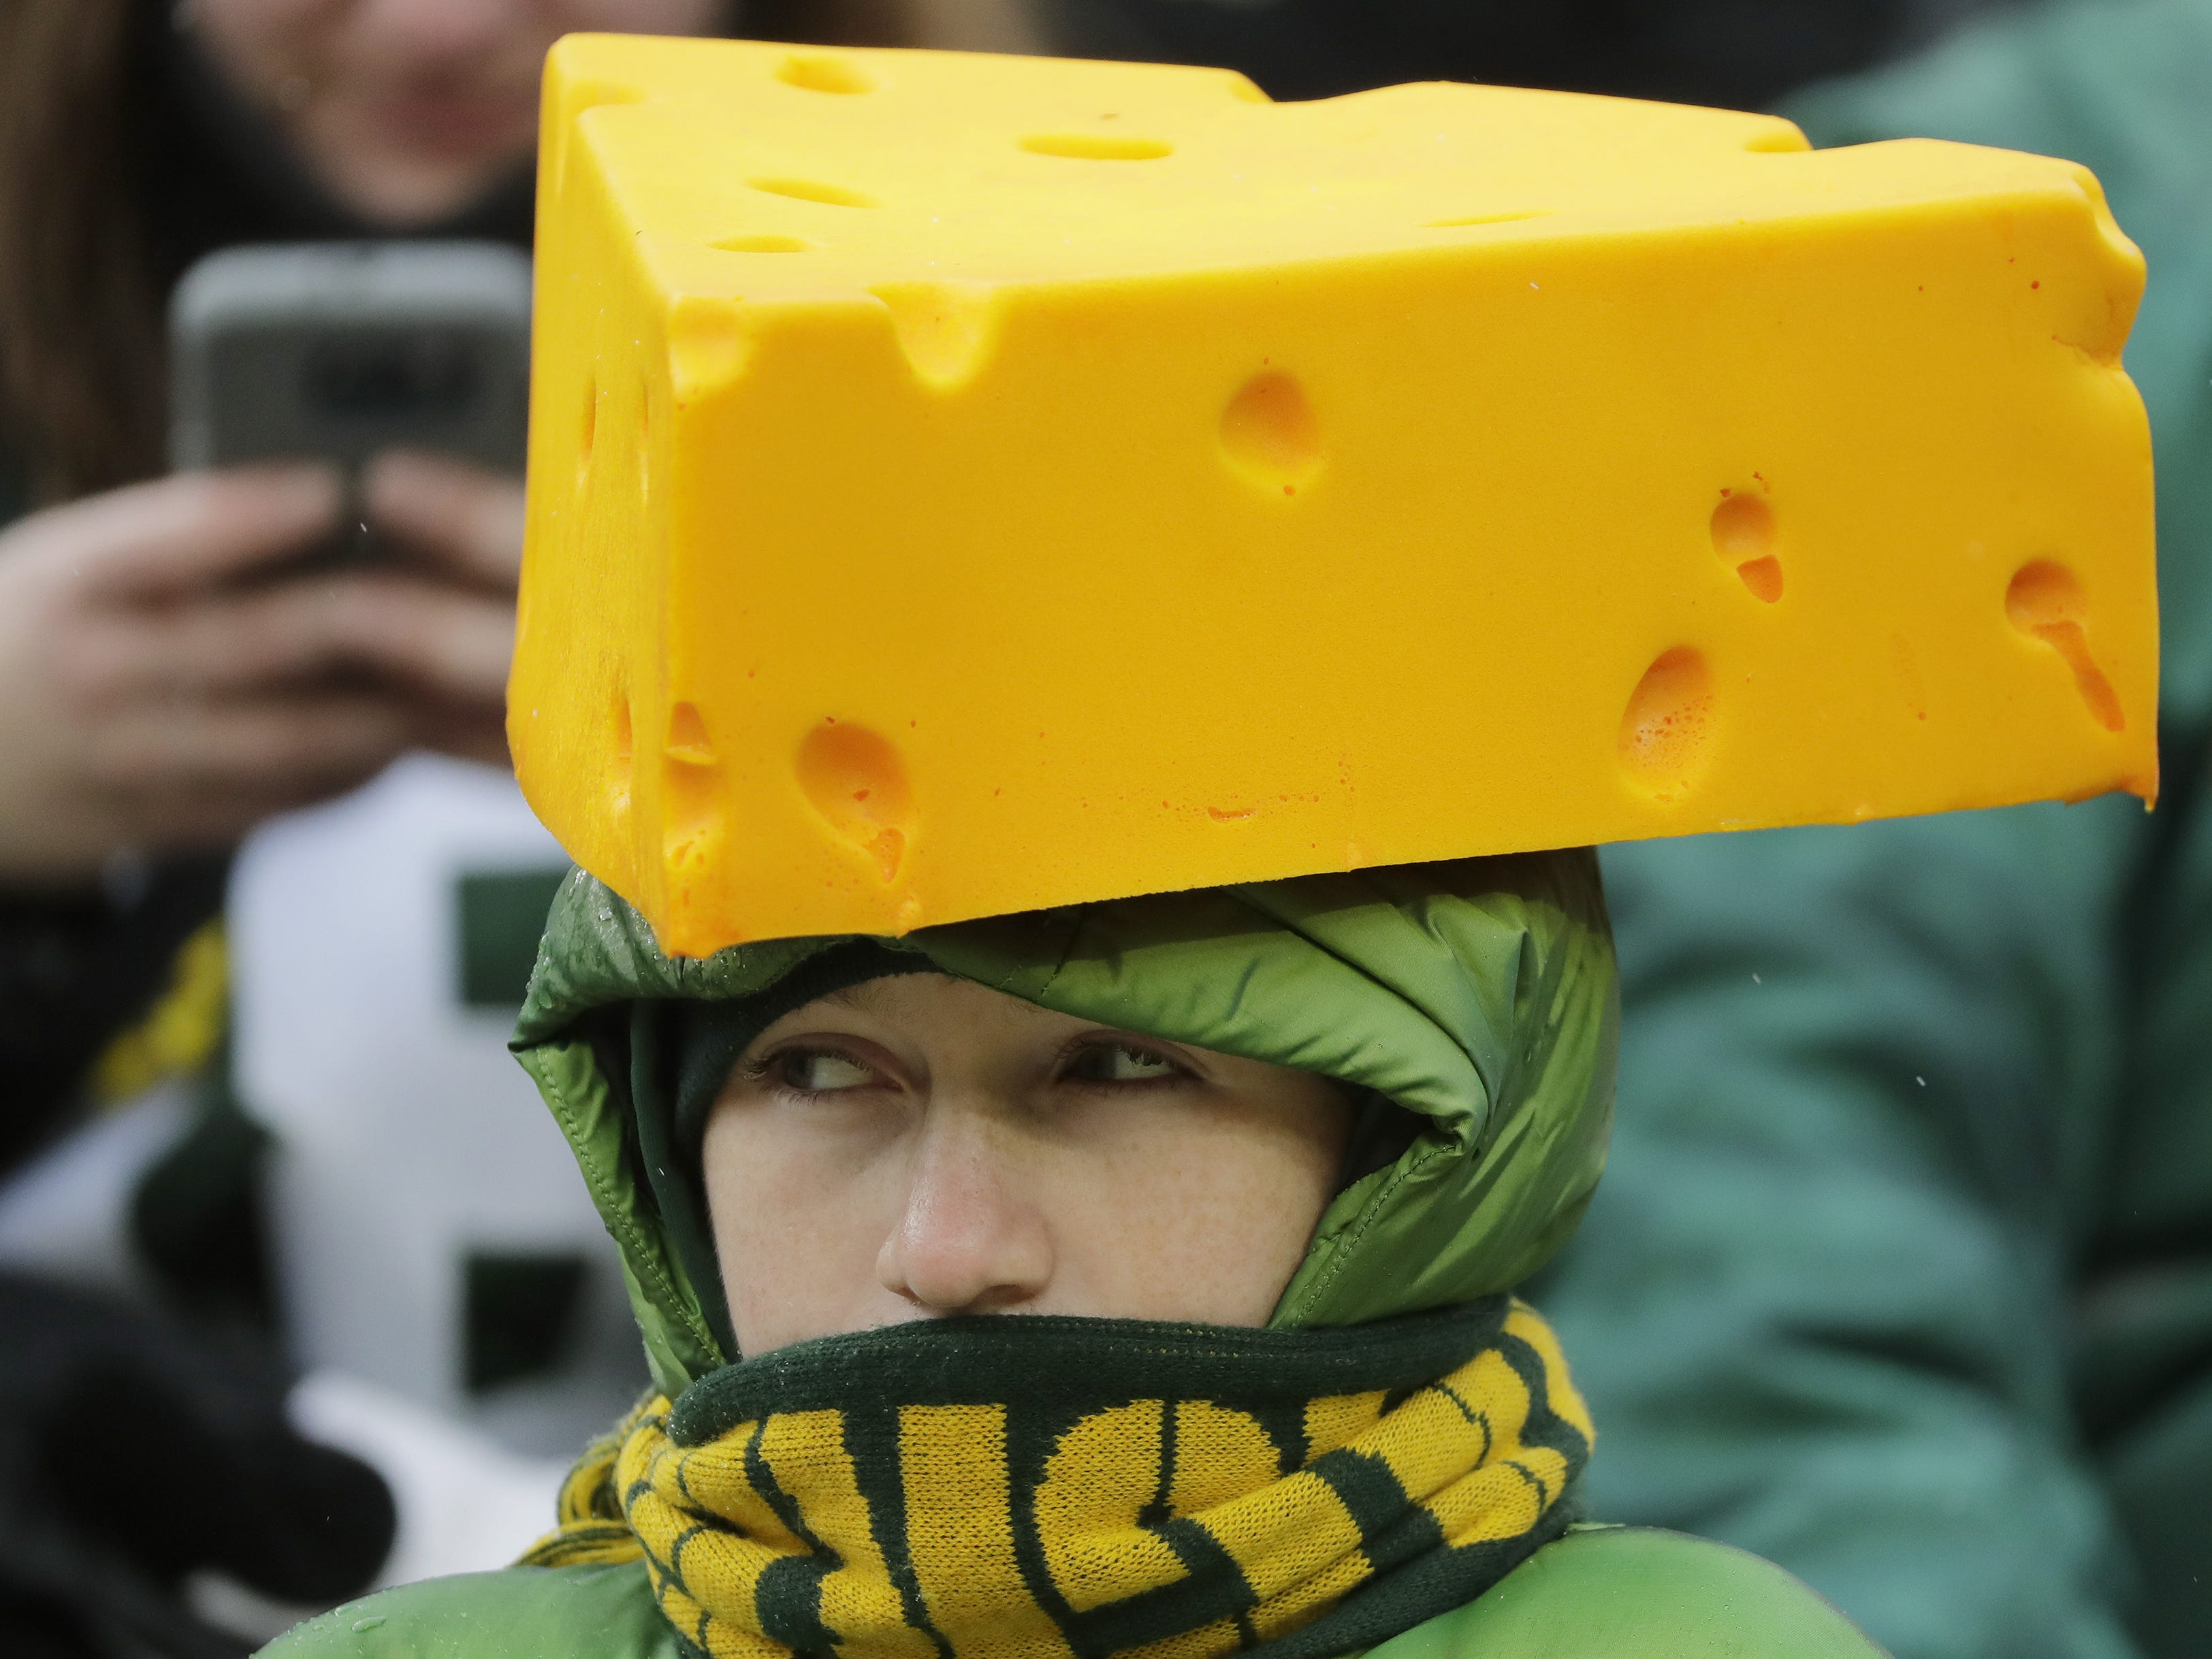 A Green Bay Packers fan watches the fourth quarter against the Arizona Cardinals at Lambeau Field on Sunday, December 2, 2018 in Green Bay, Wis.